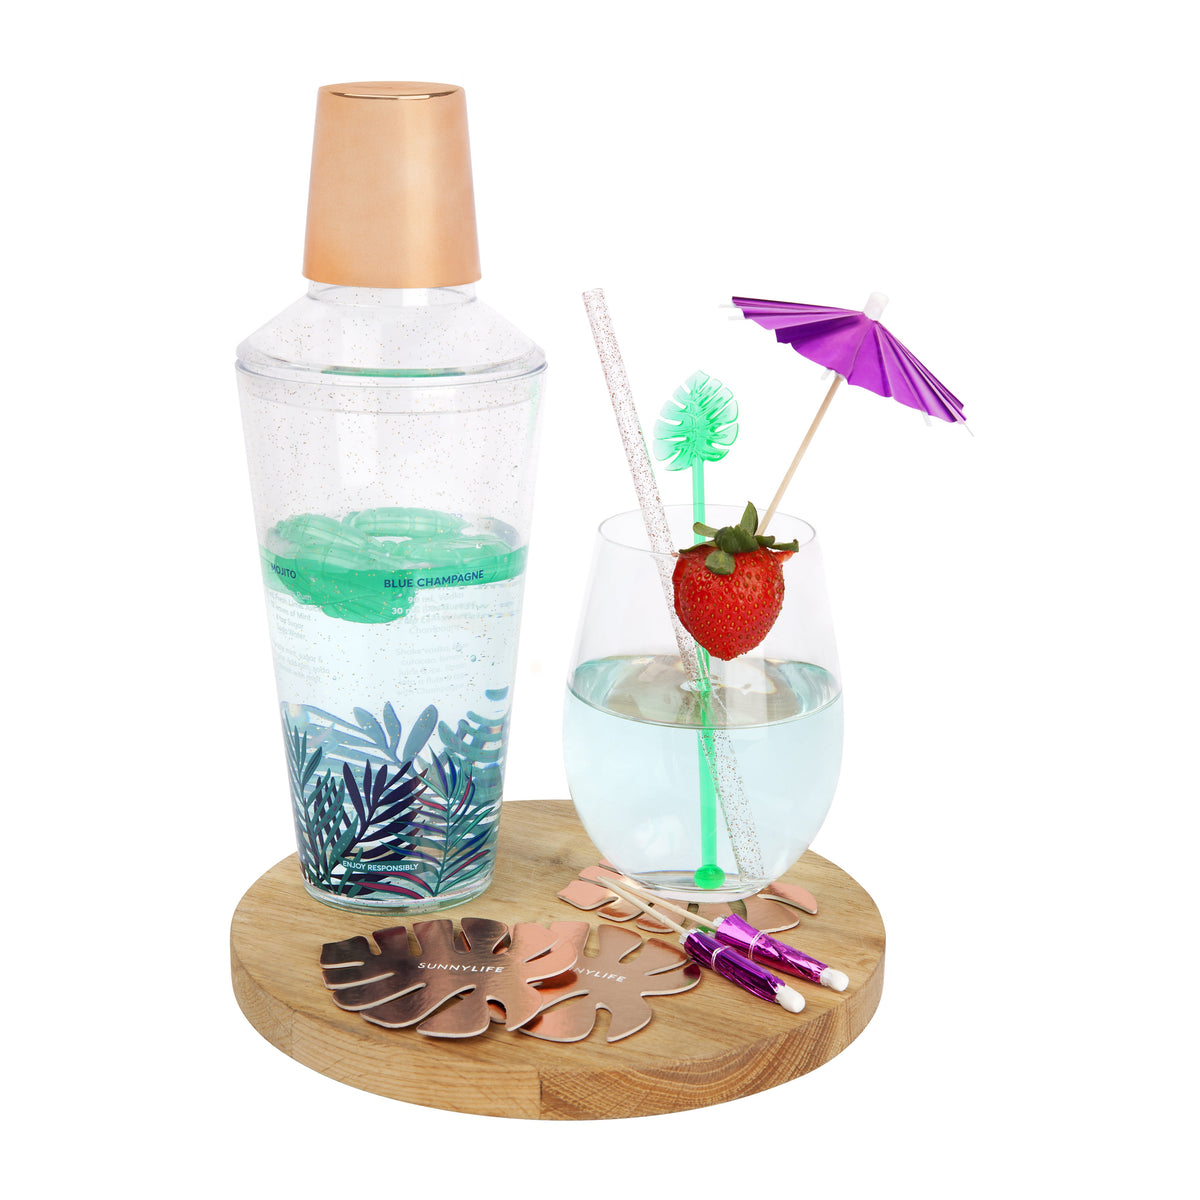 Sunnylife | Luxe Cocktail Kit | Electric Bloom